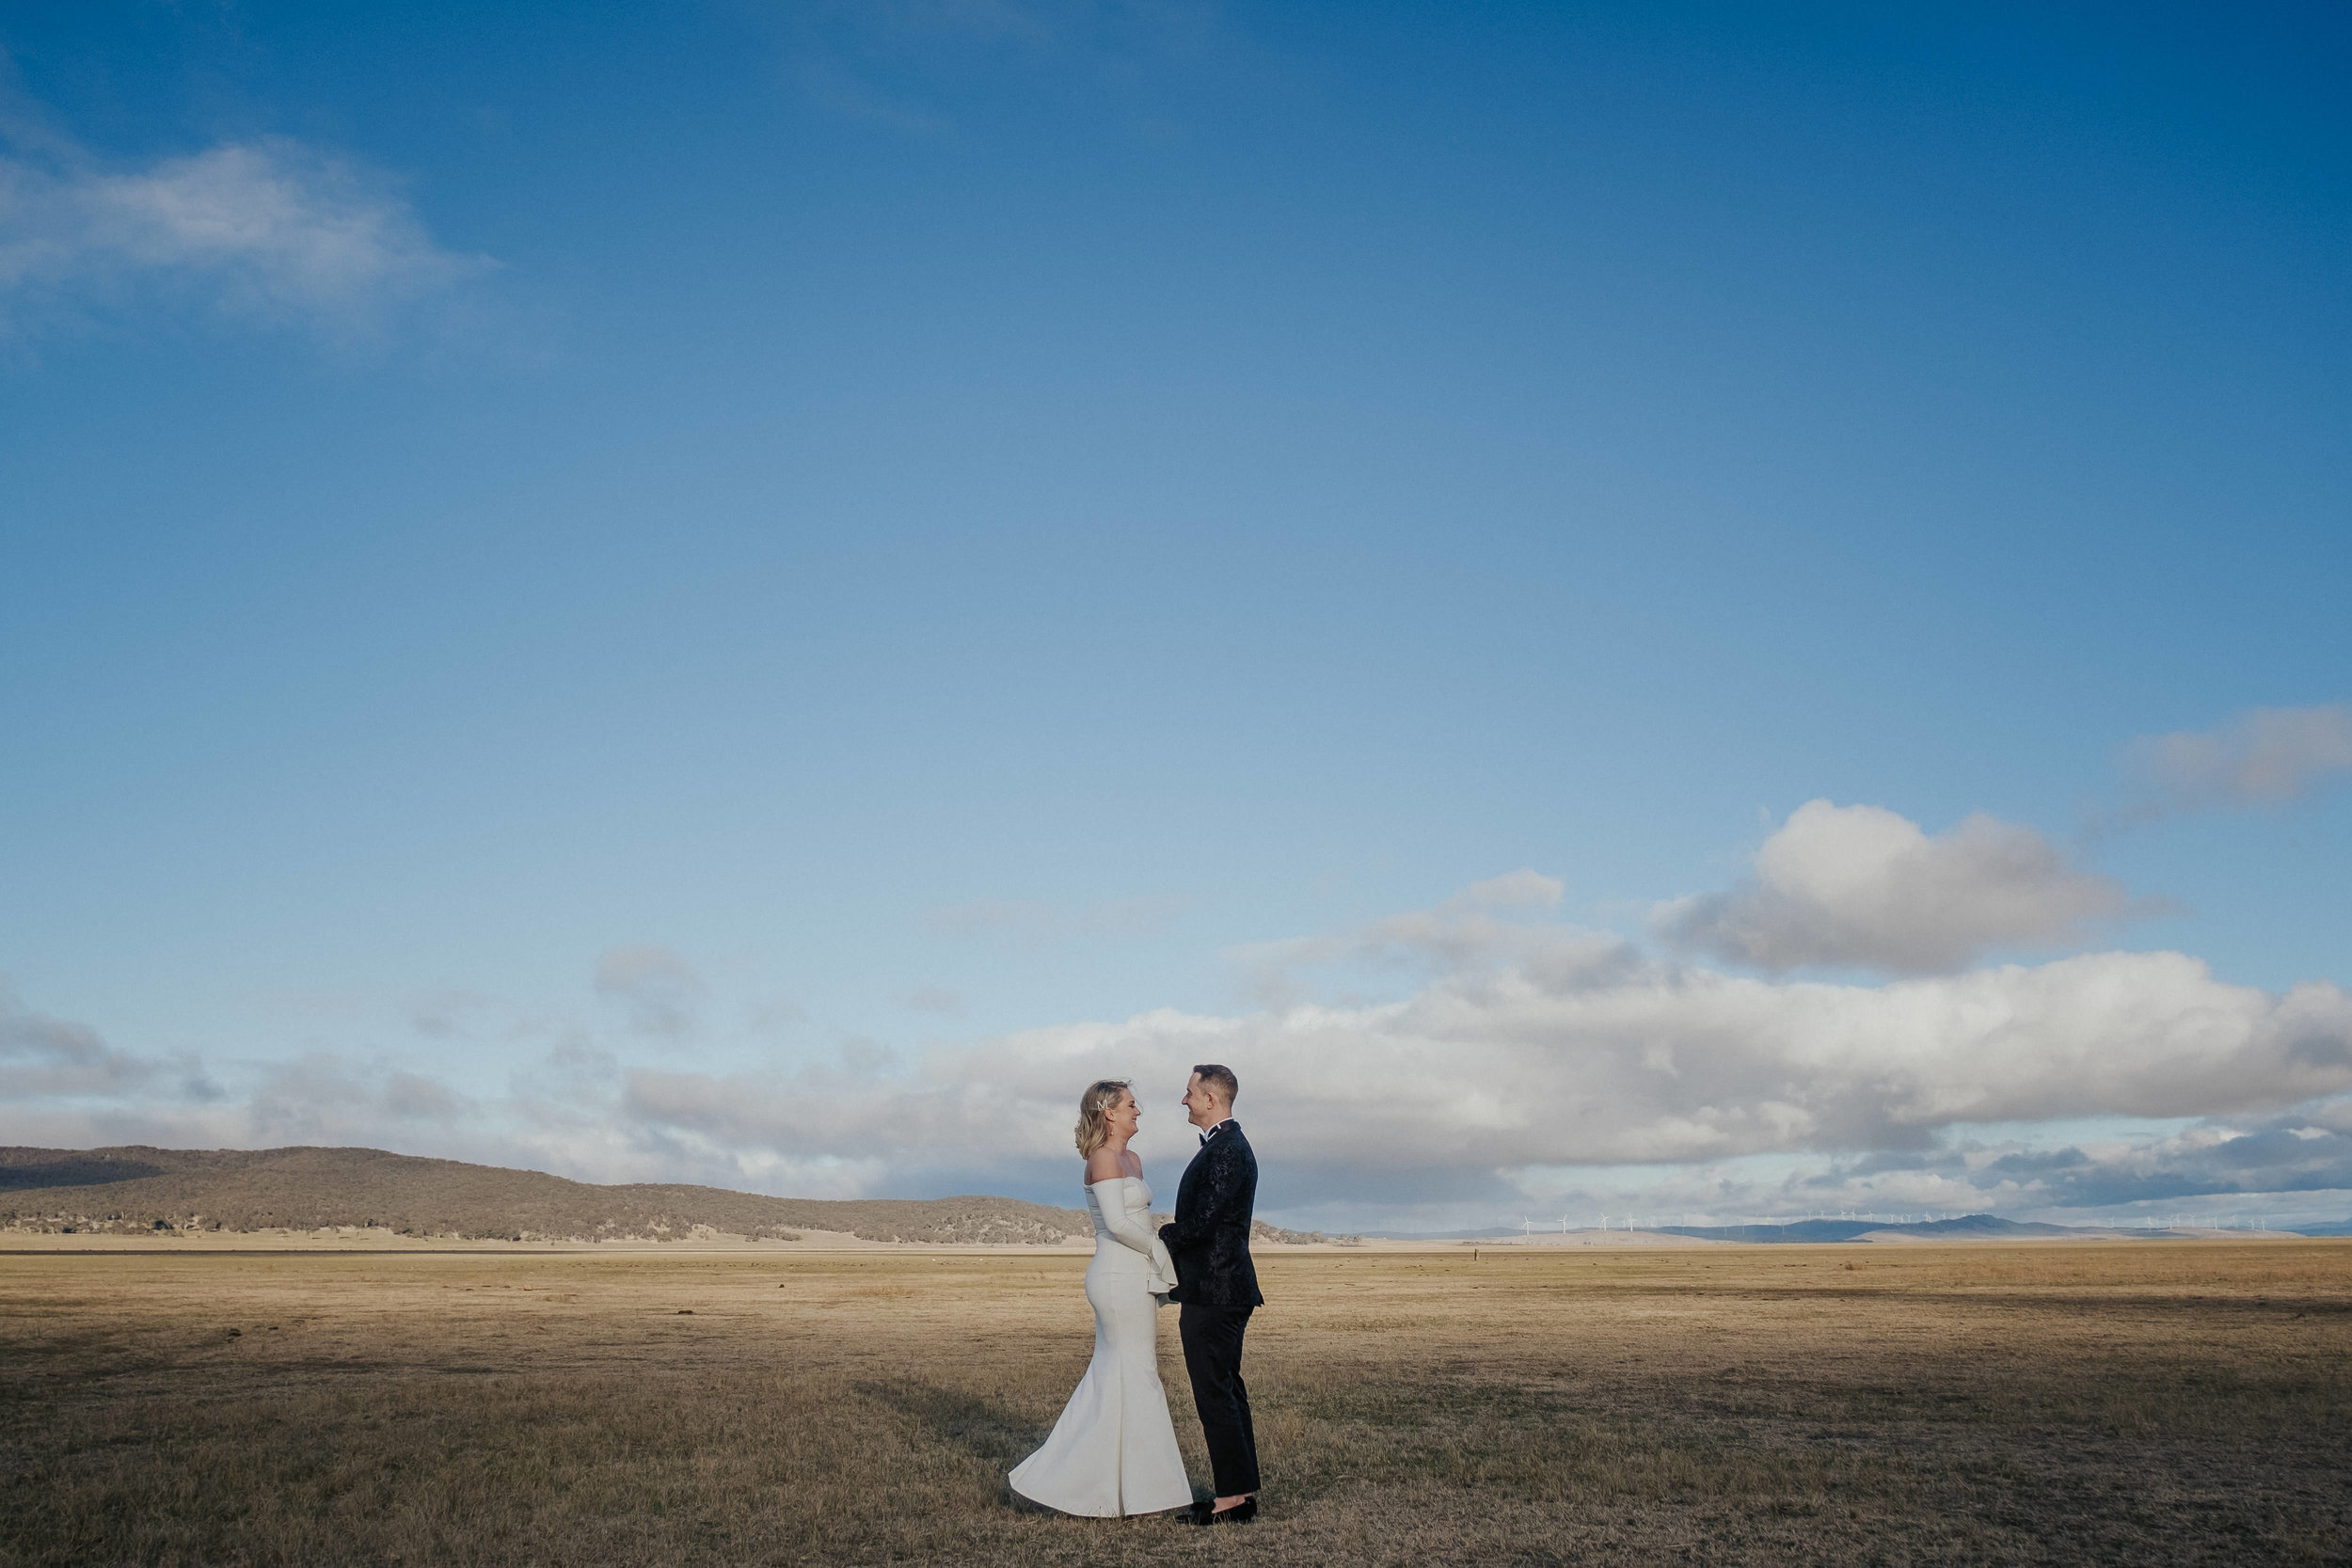 Grace and Mark Lake George Winery Canberra Wedding by Milton Gan Photography 294.jpg